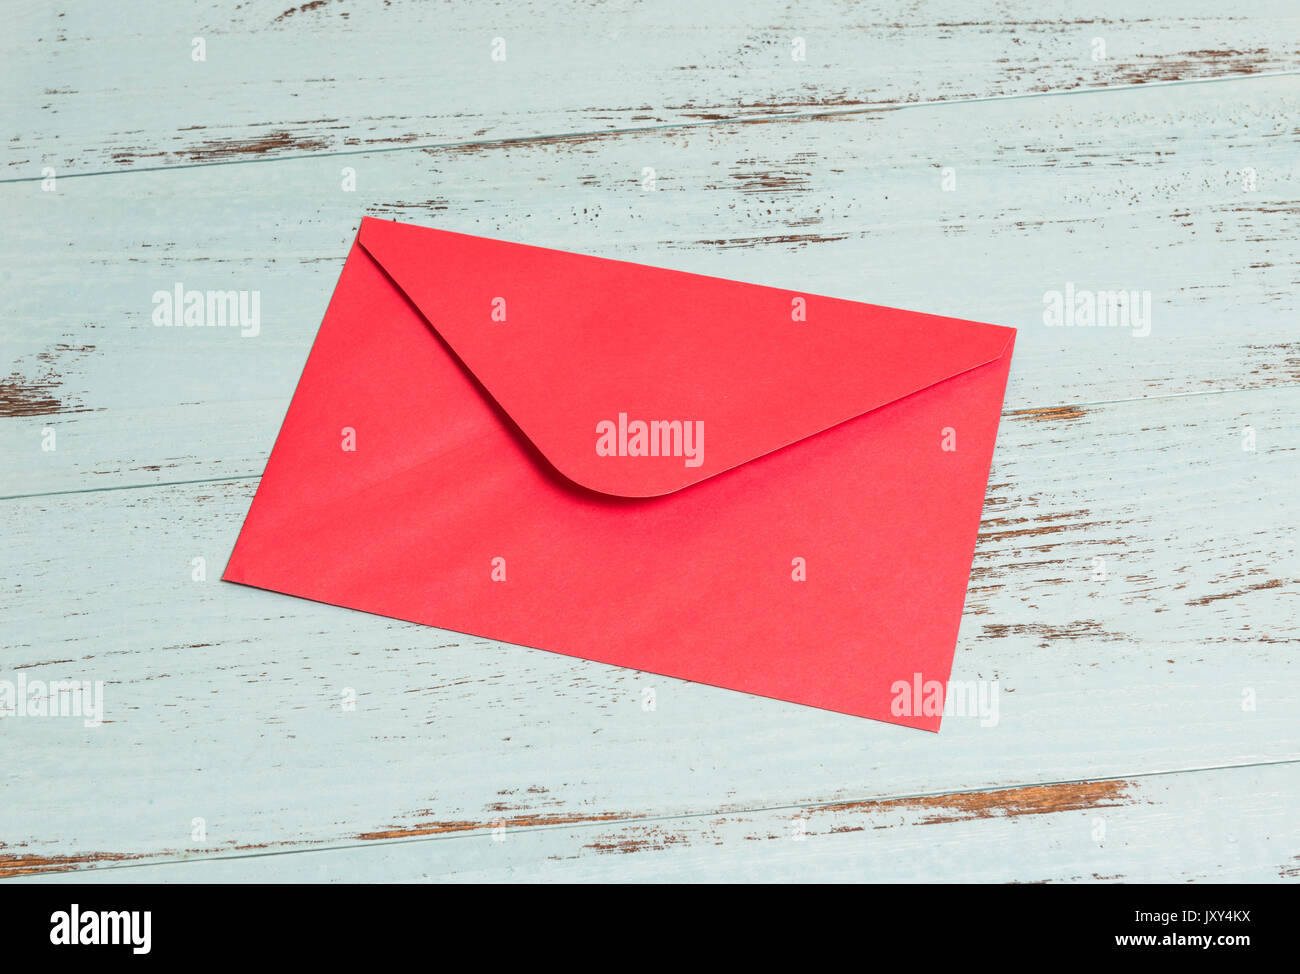 Invitation Envelope Stock Photos & Invitation Envelope Stock Images ...